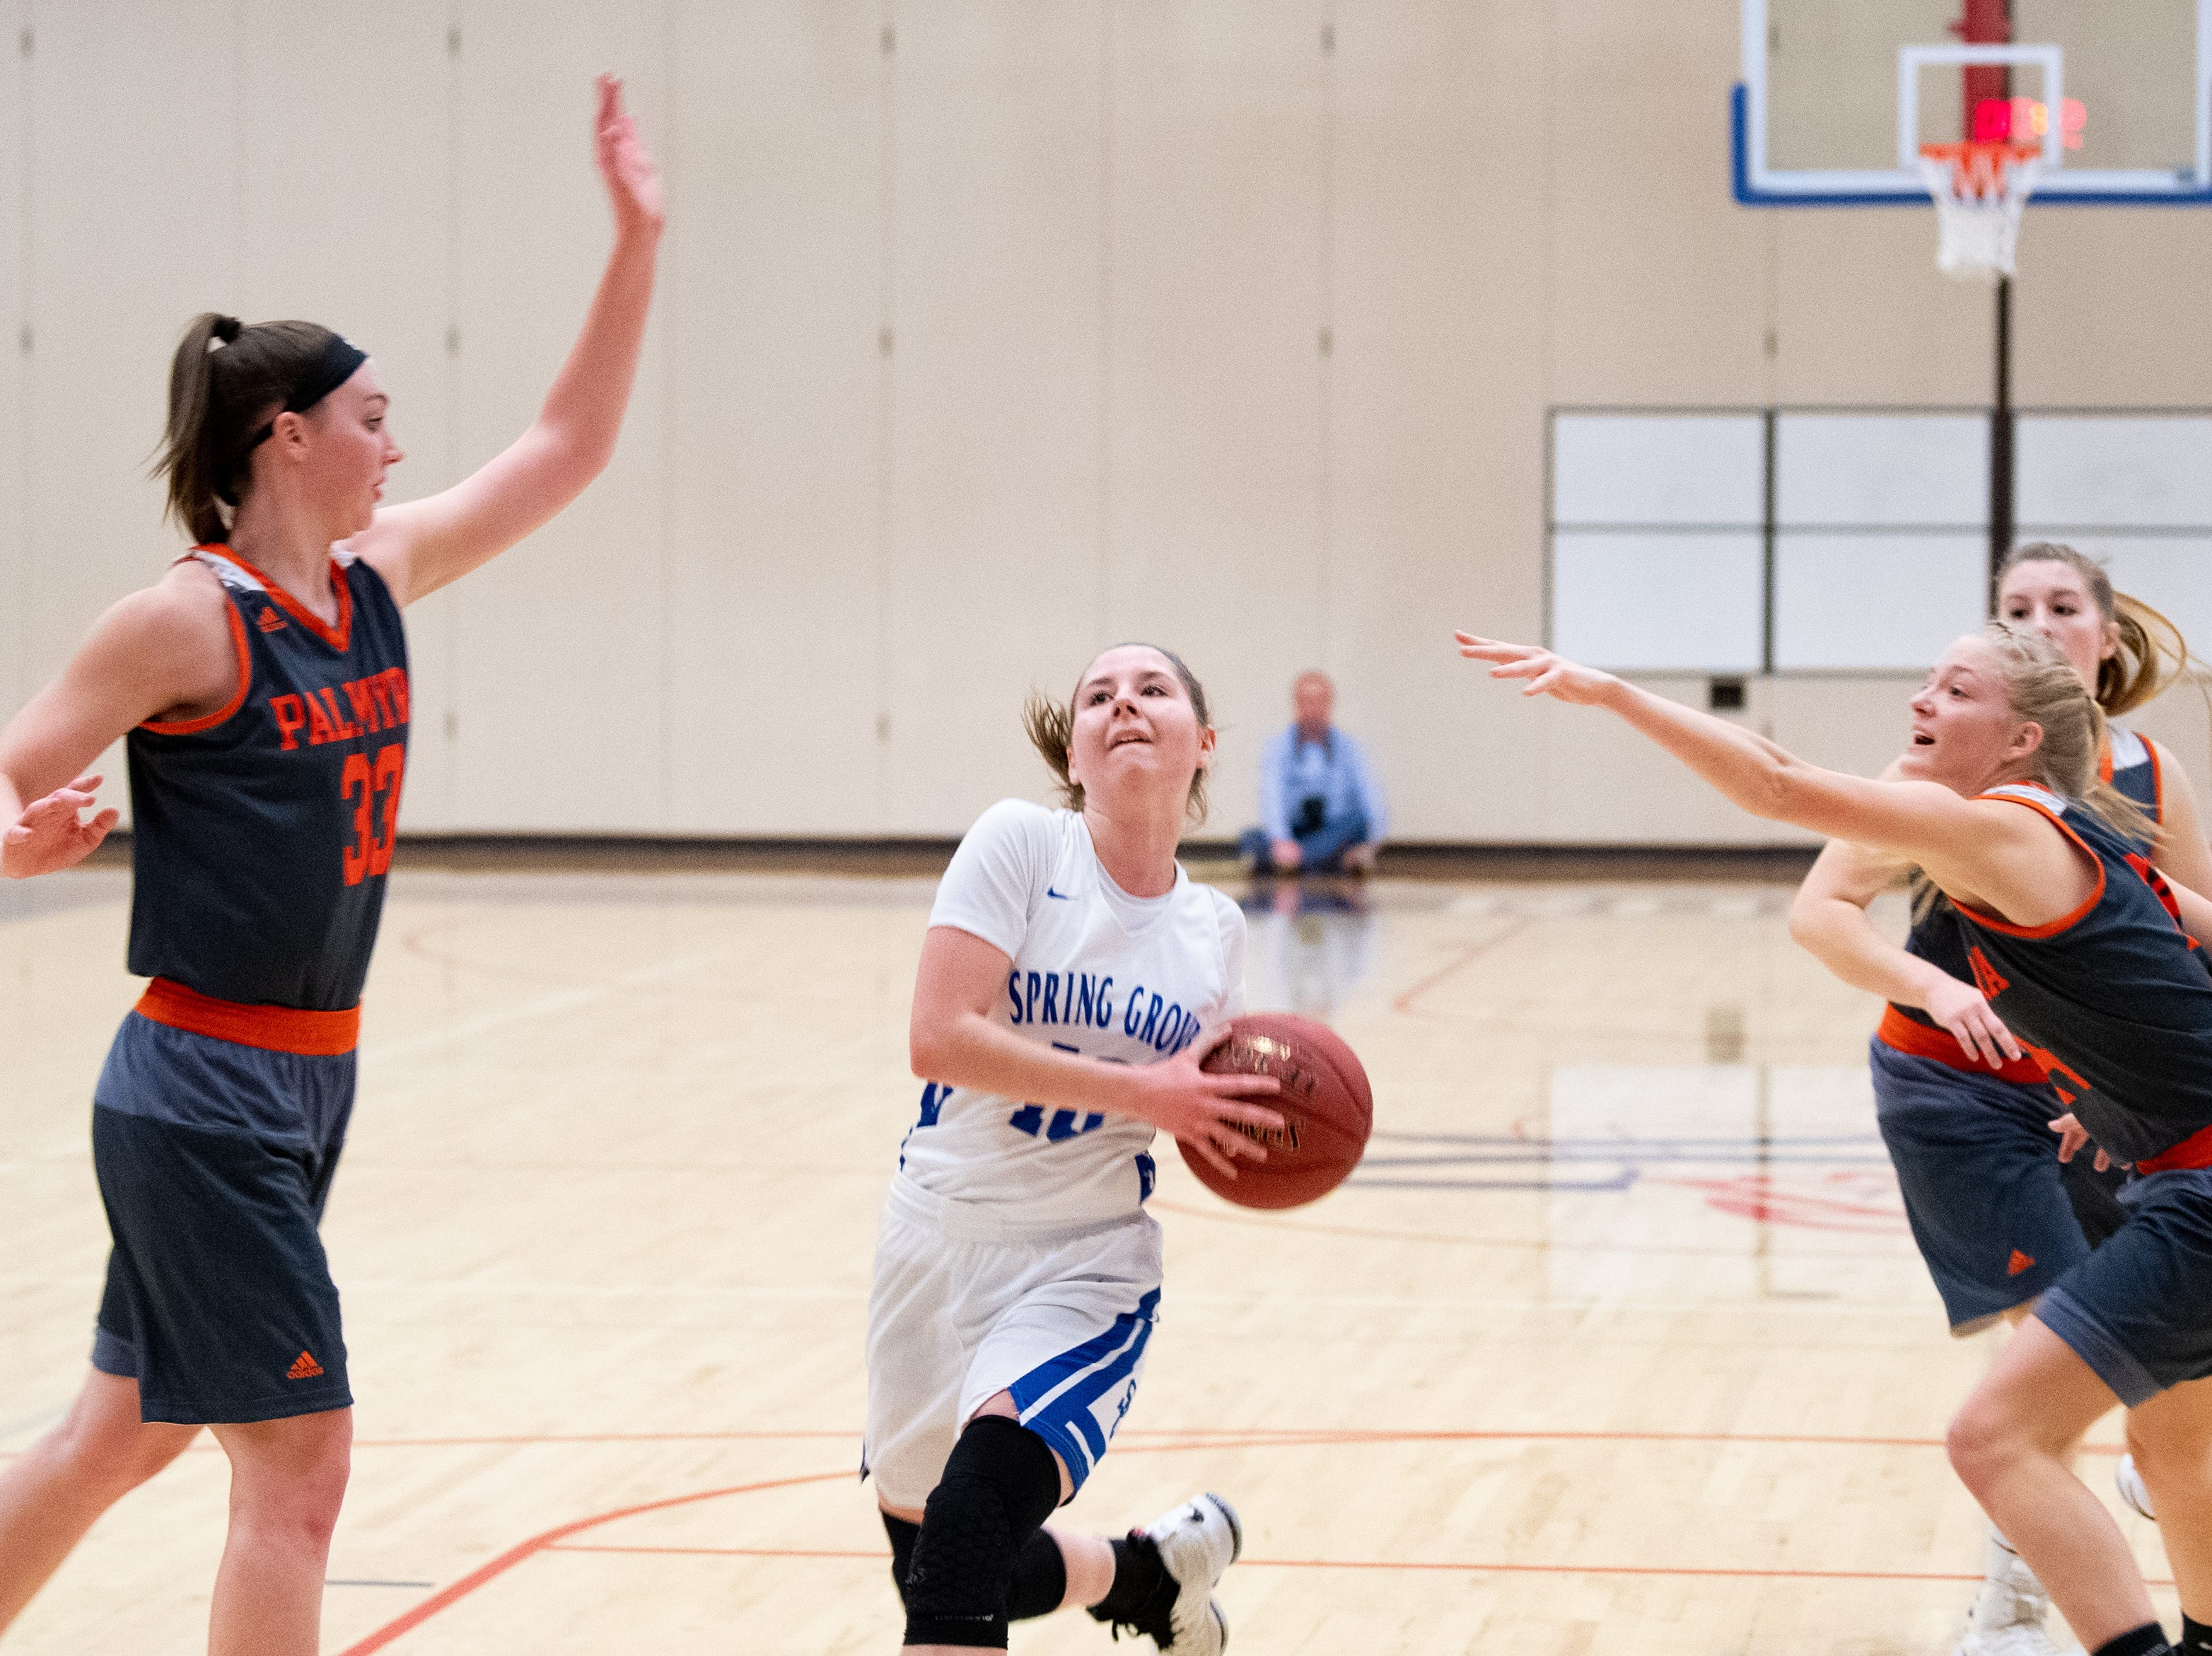 Ellie Glass (10) drives down the lane during the District 3 Class 5A girls' basketball quarterfinal between Spring Grove and Palmyra, Friday, February 22, 2019 at Spring Grove Area High School. The Cougars defeated the Rockets 43 to 41.